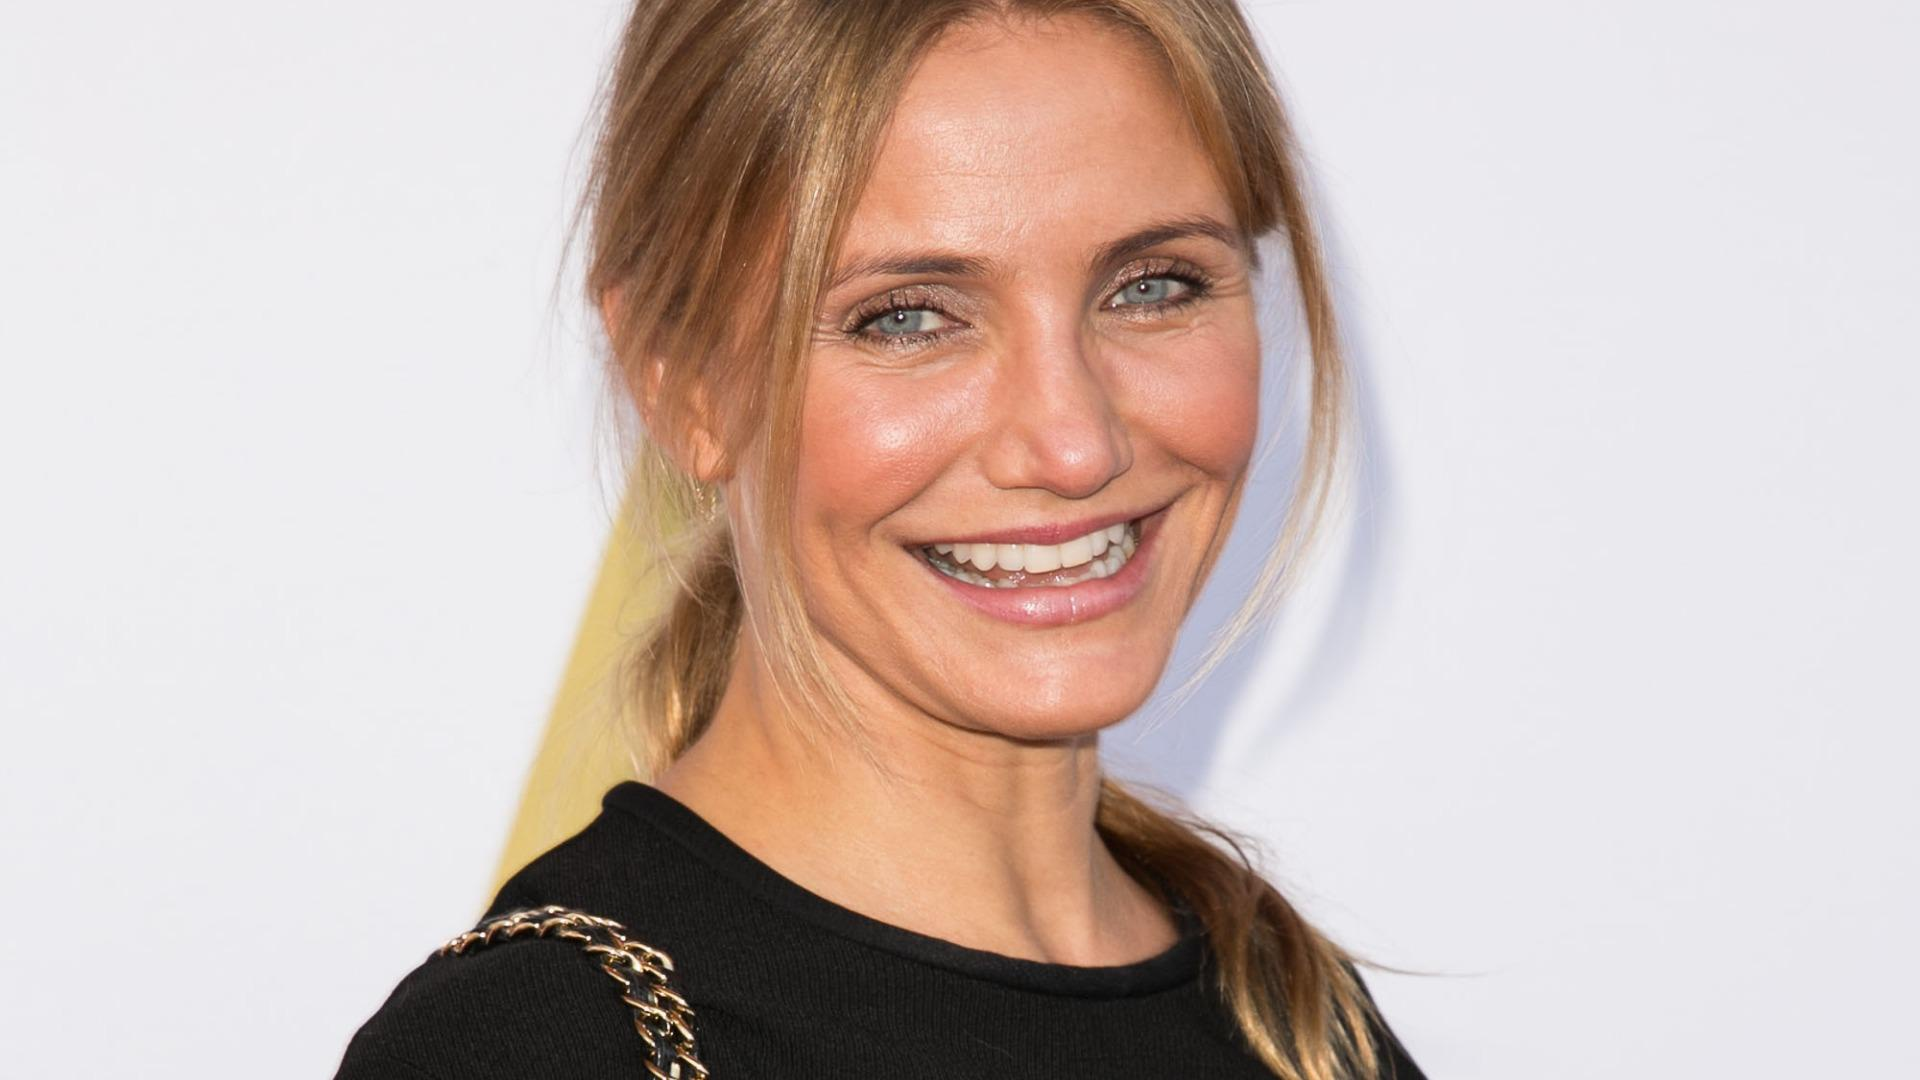 Cameron Diaz Latest Beautiful HD Wallpapers 1080p Pictures 1920x1080